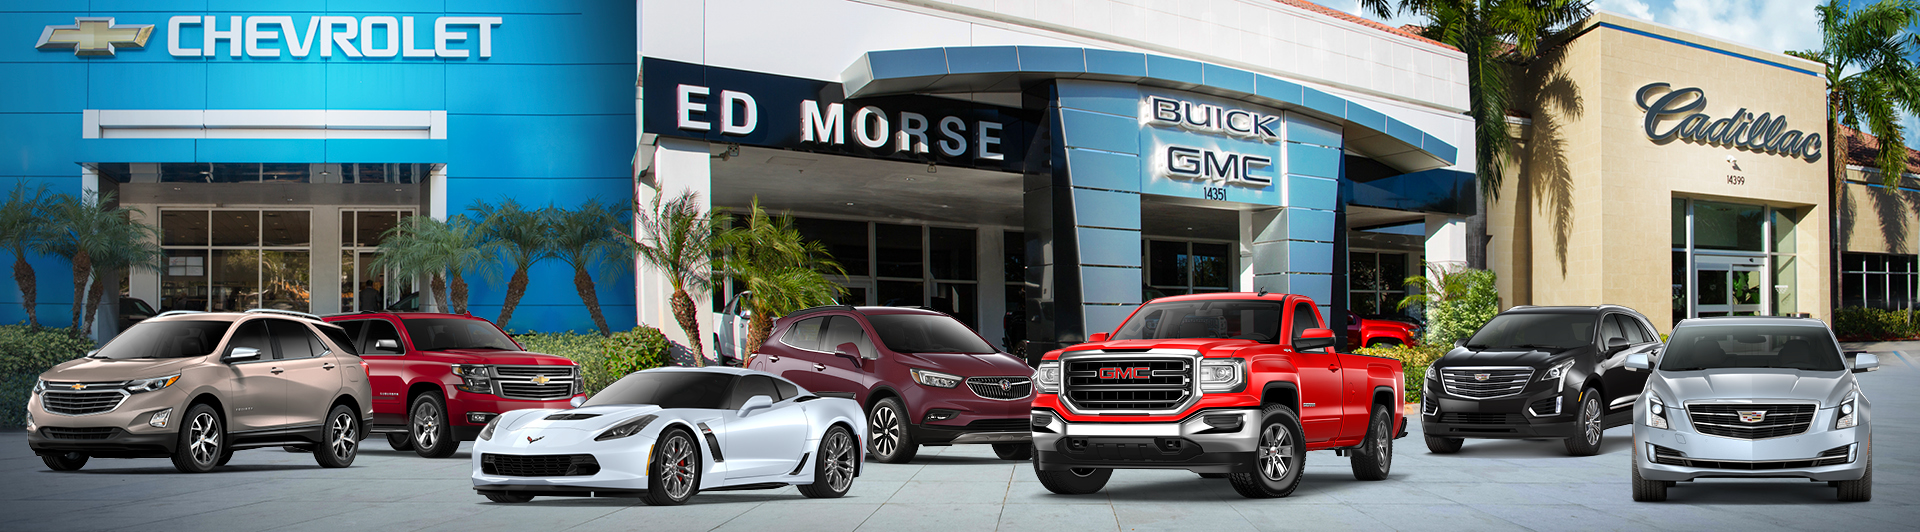 New & Used Cars for Sale | Sunrise, Ft. Lauderdale, Coral Springs